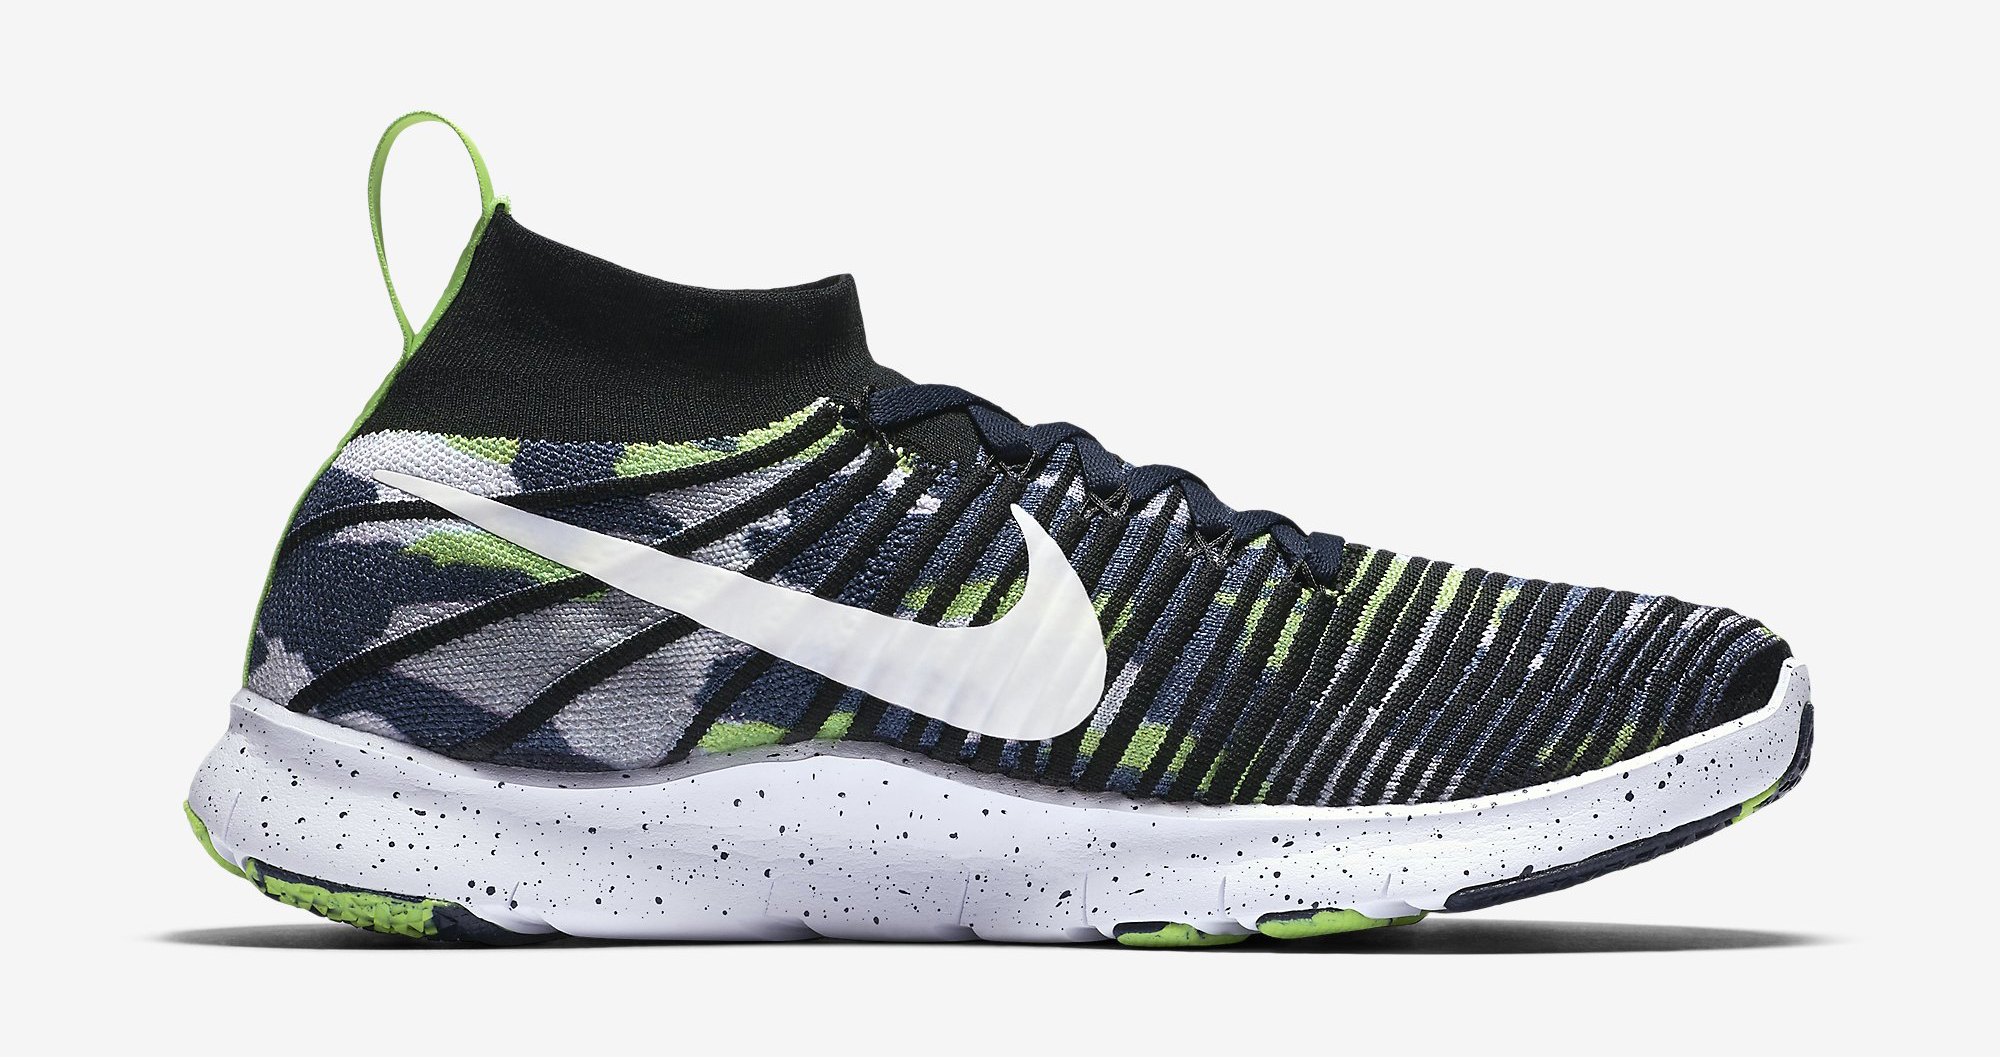 Image via Nike Russell Wilson Nike Free Train Force Flyknit 840299-400  Medial 92586c6db271